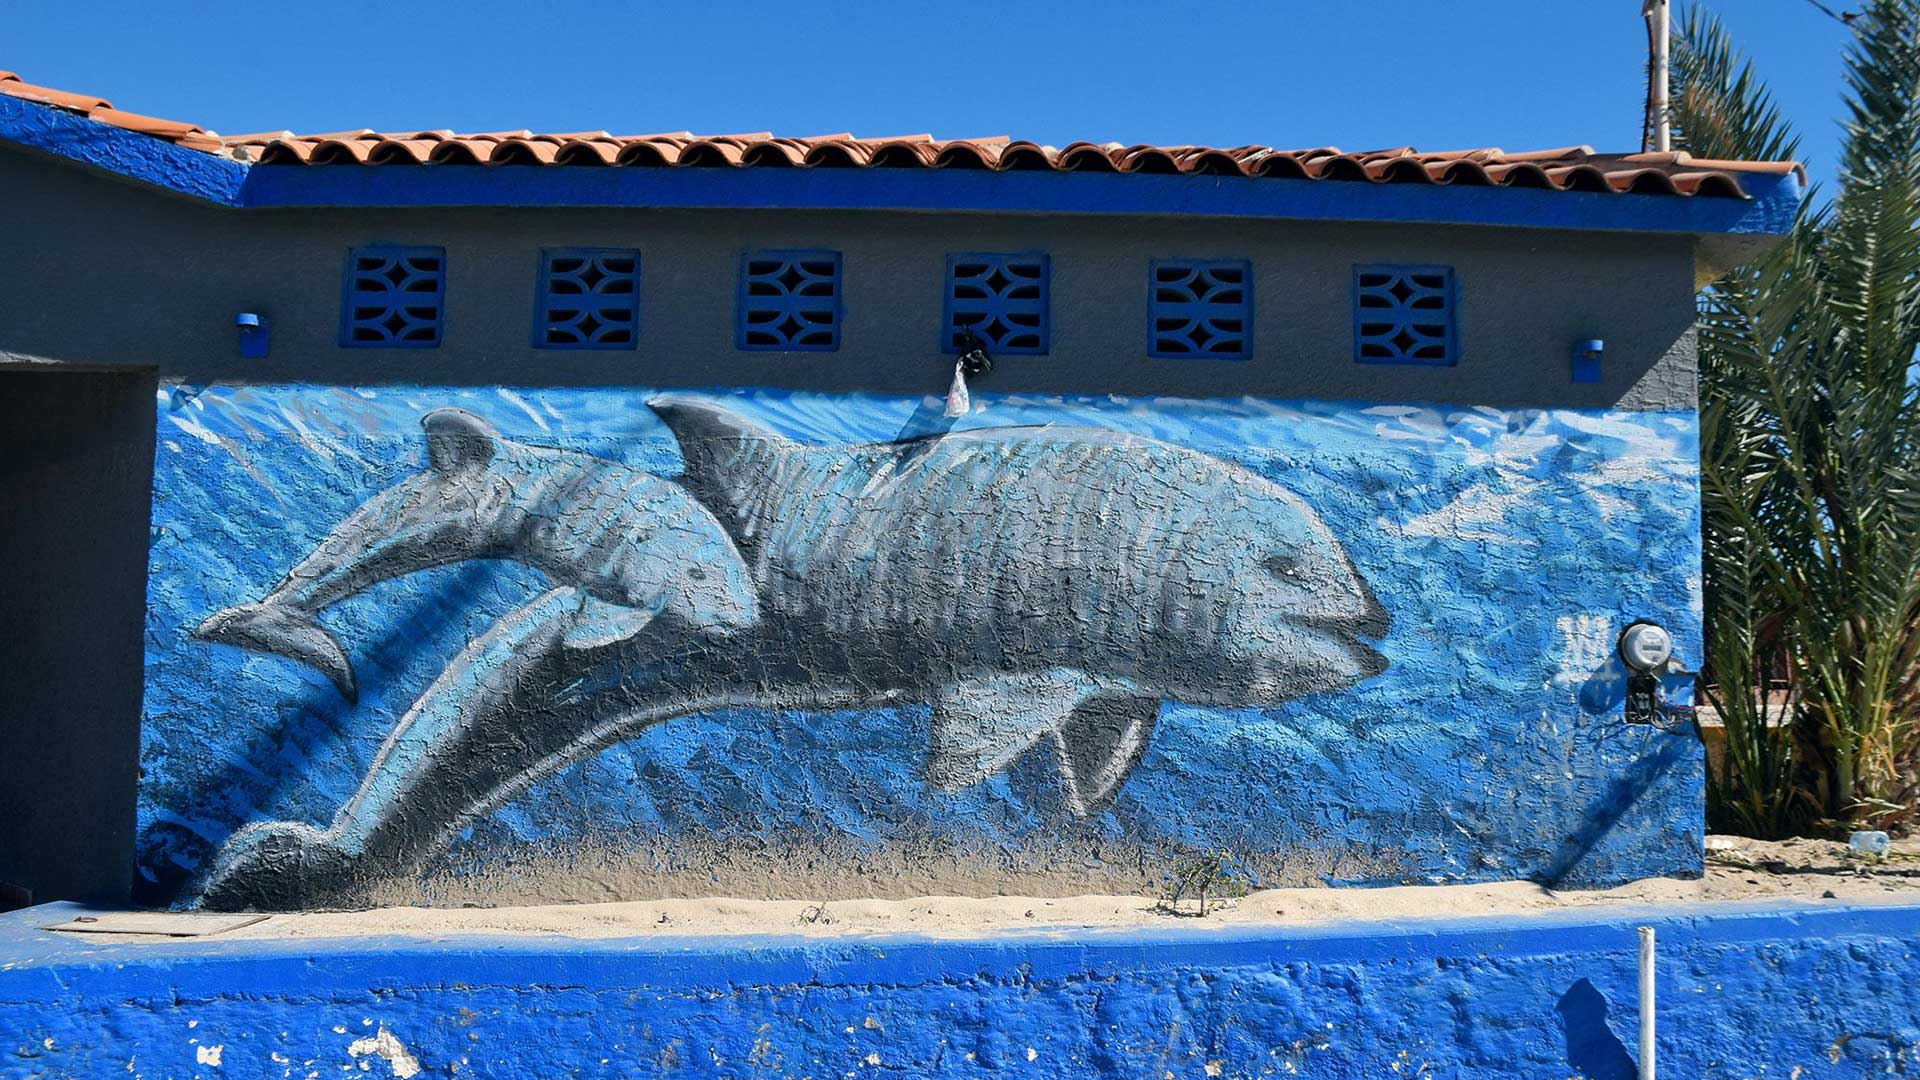 A mural of a vaquita mother and calf near the boardwalk in San Felipe, Baja California.